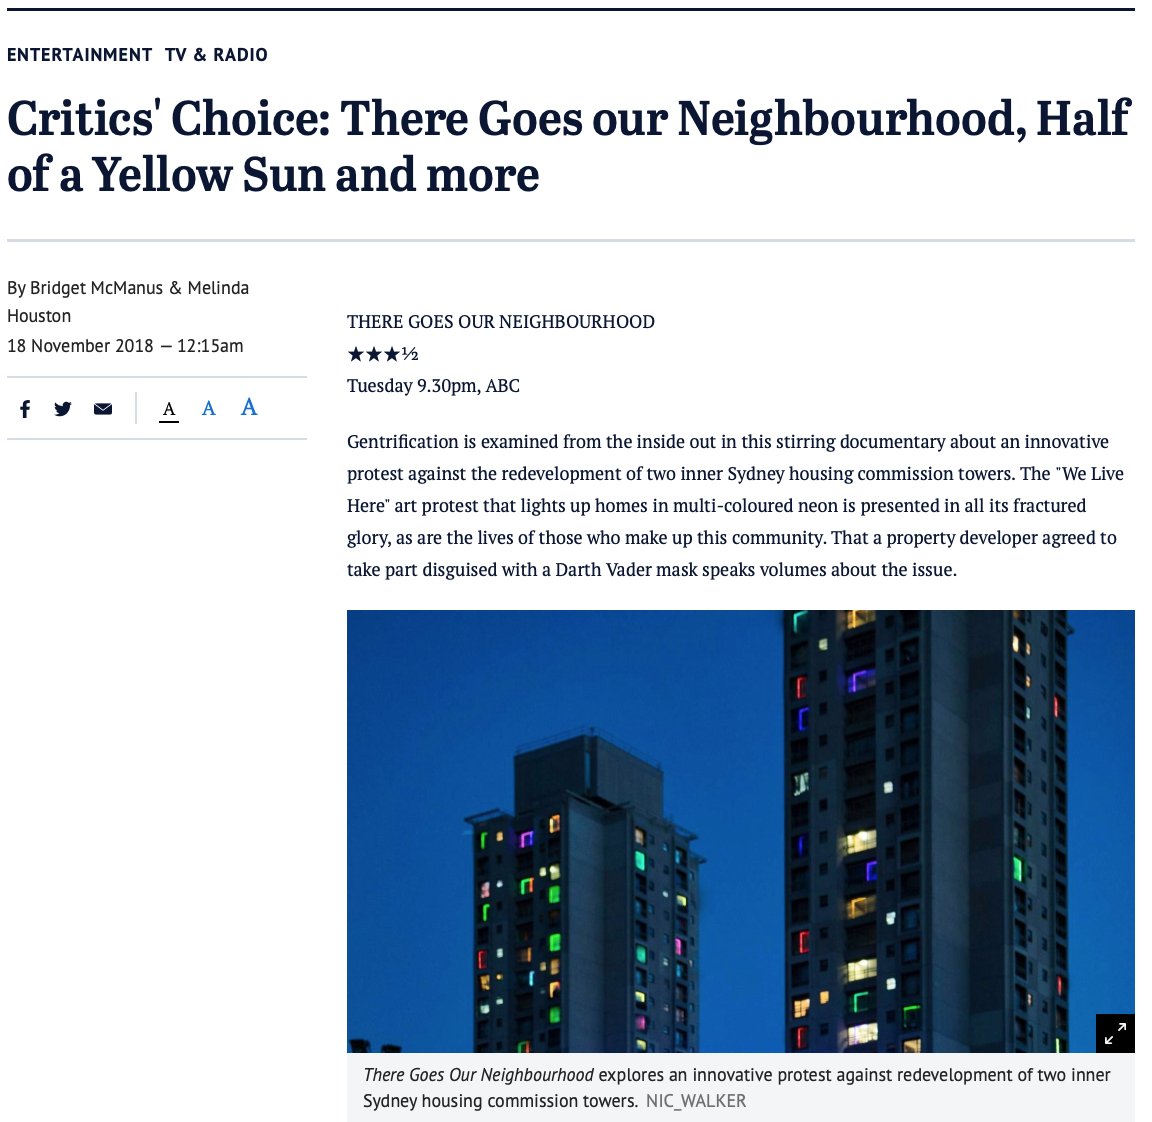 Critic's ChoiceSydney Morning Herald - Gentrification is examined from the inside out in this stirring documentary about an innovative protest against the redevelopment of two inner Sydney housing commission towers. The